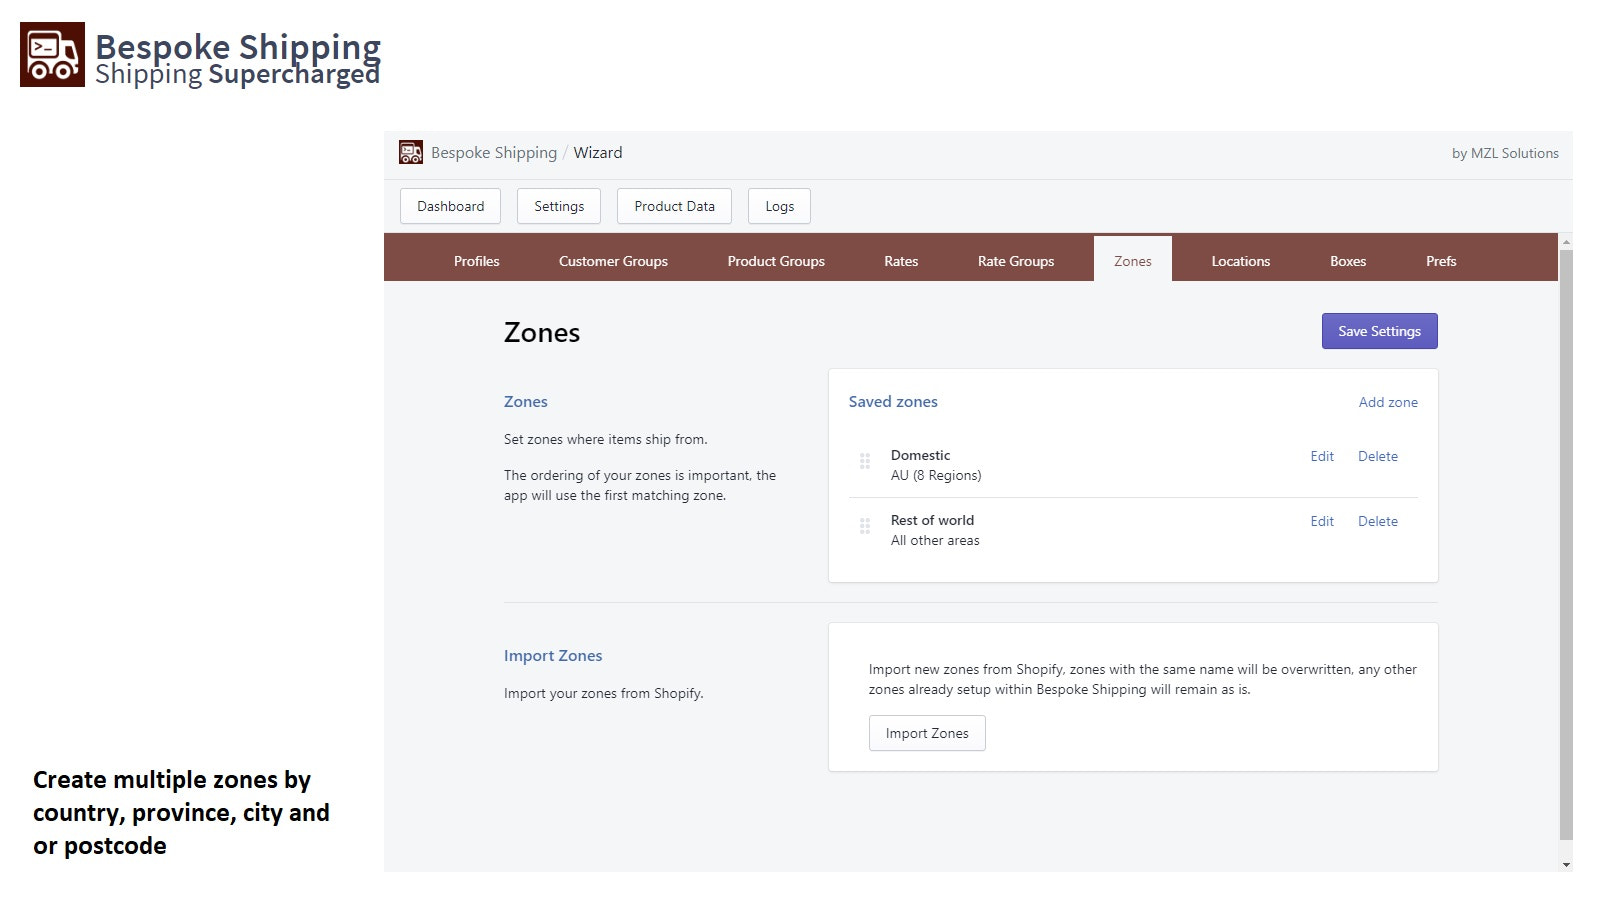 Create zones by country, province, city and postcode